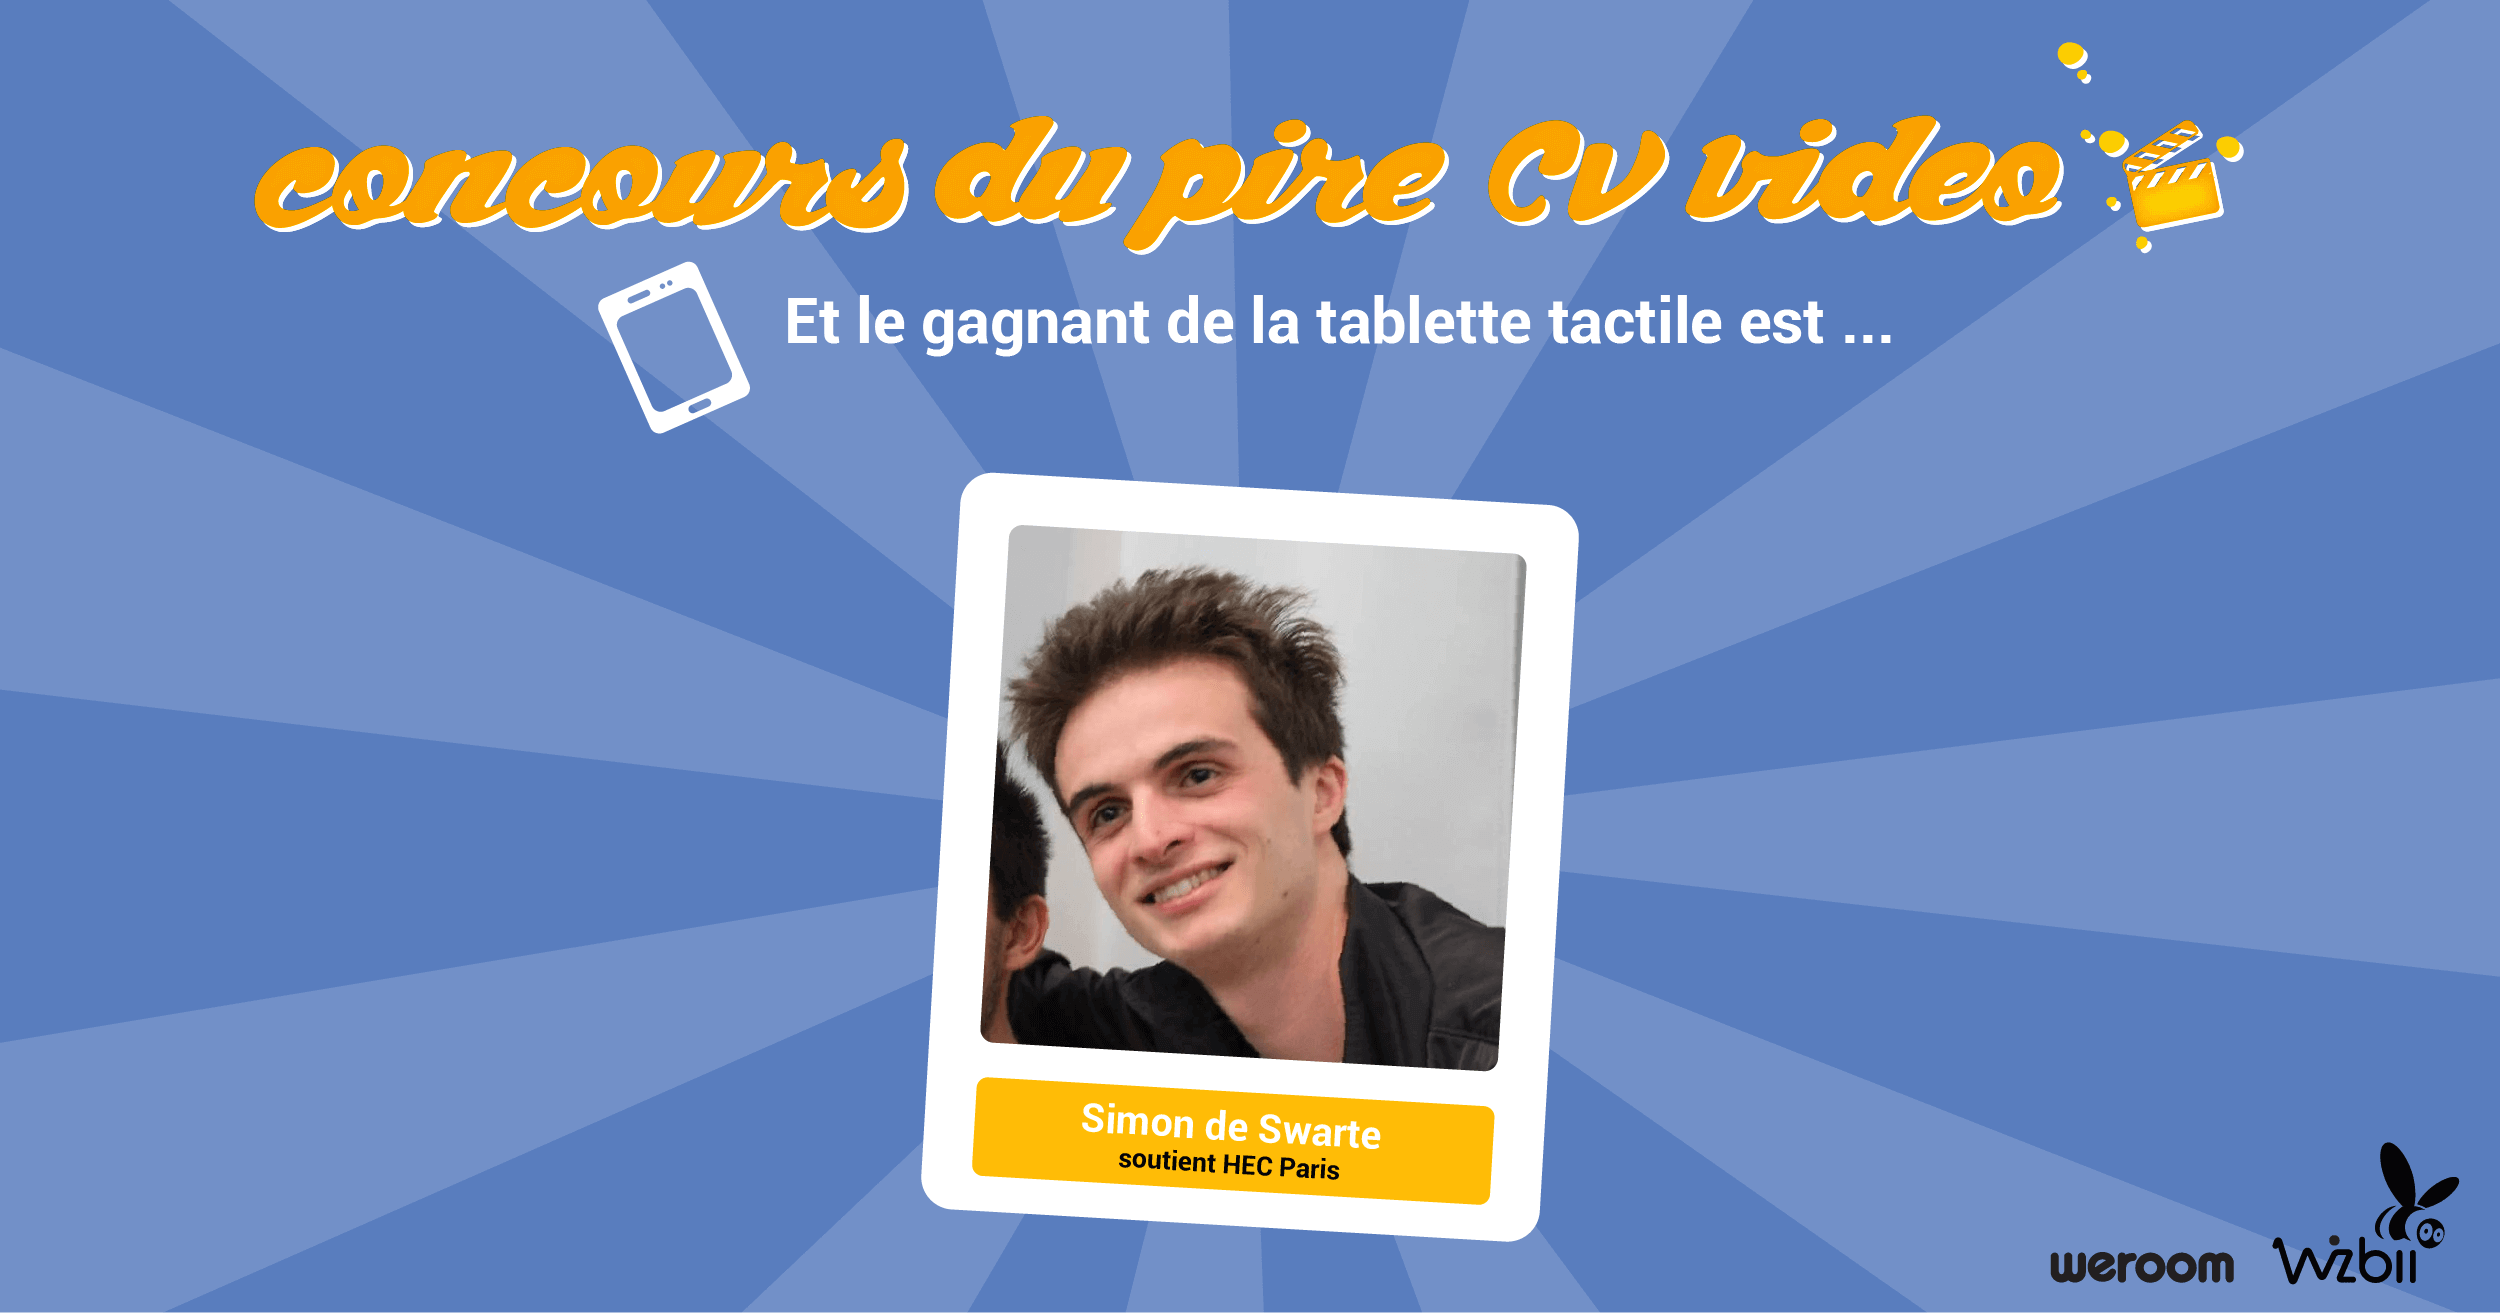 pire cv video concours tablette tactile gagnant wizbii hec